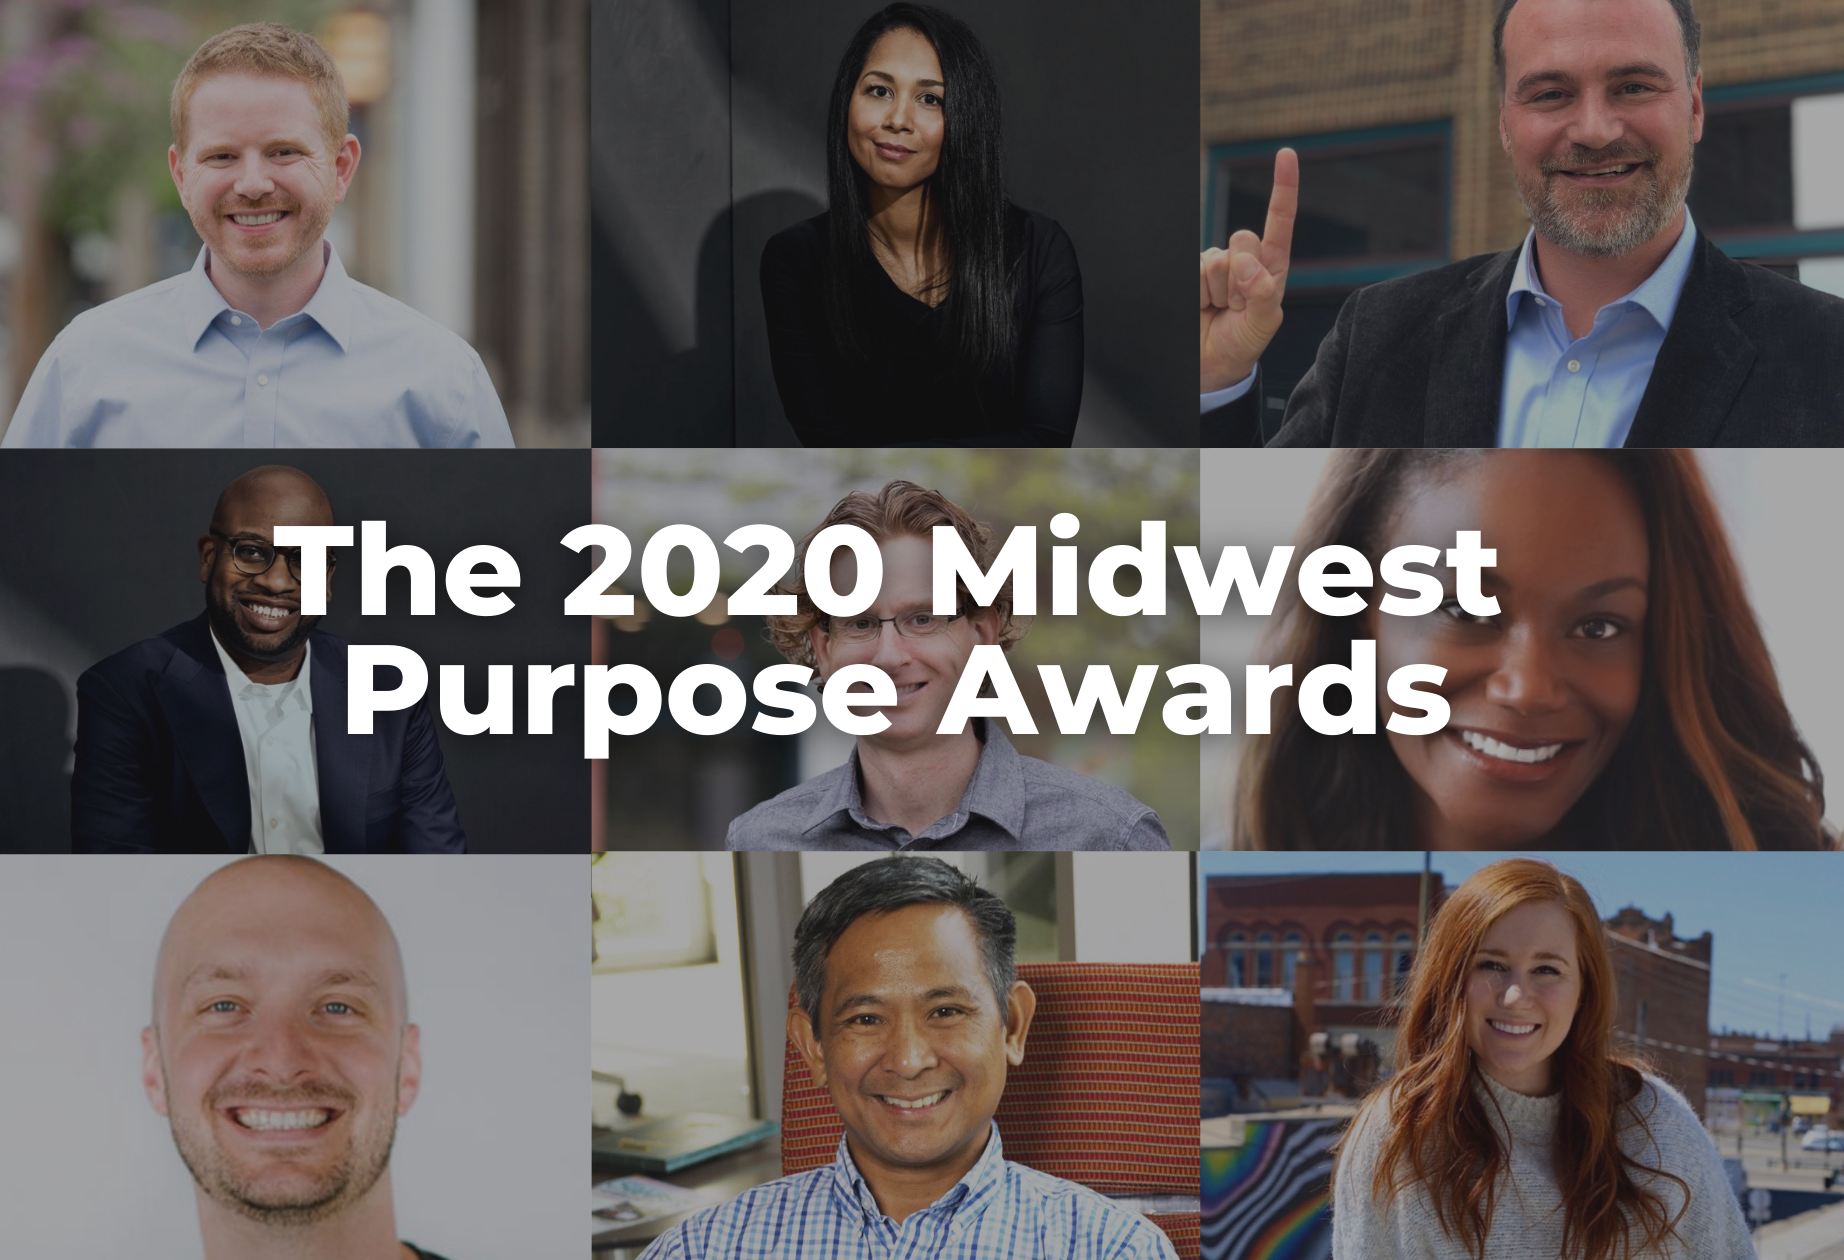 Meet The Winners of the 2020 Purpose Awards